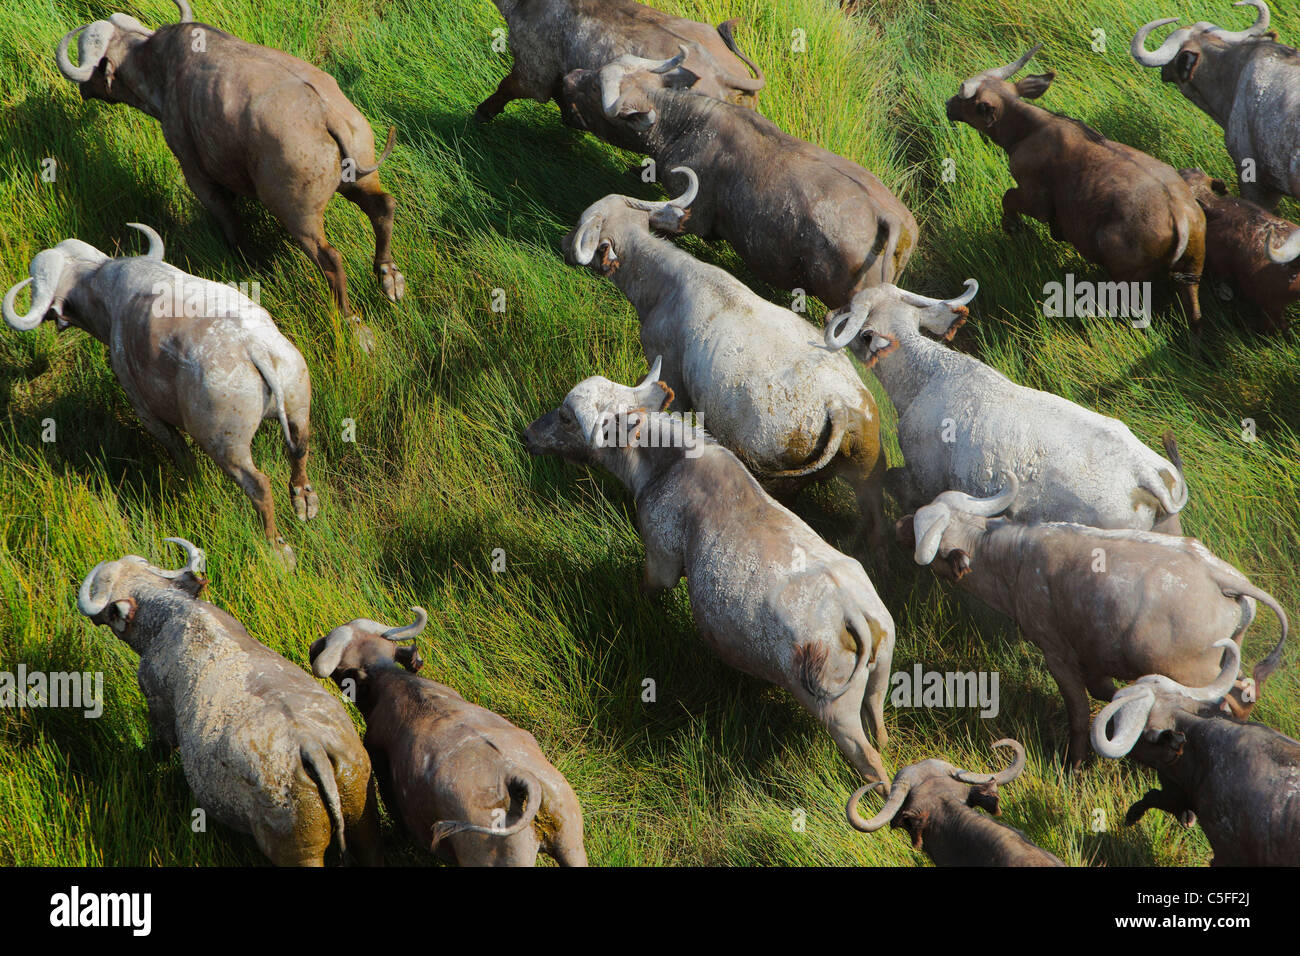 Aerial view of Cape Buffalo (Syncerus caffer) in Kenya. Stock Photo